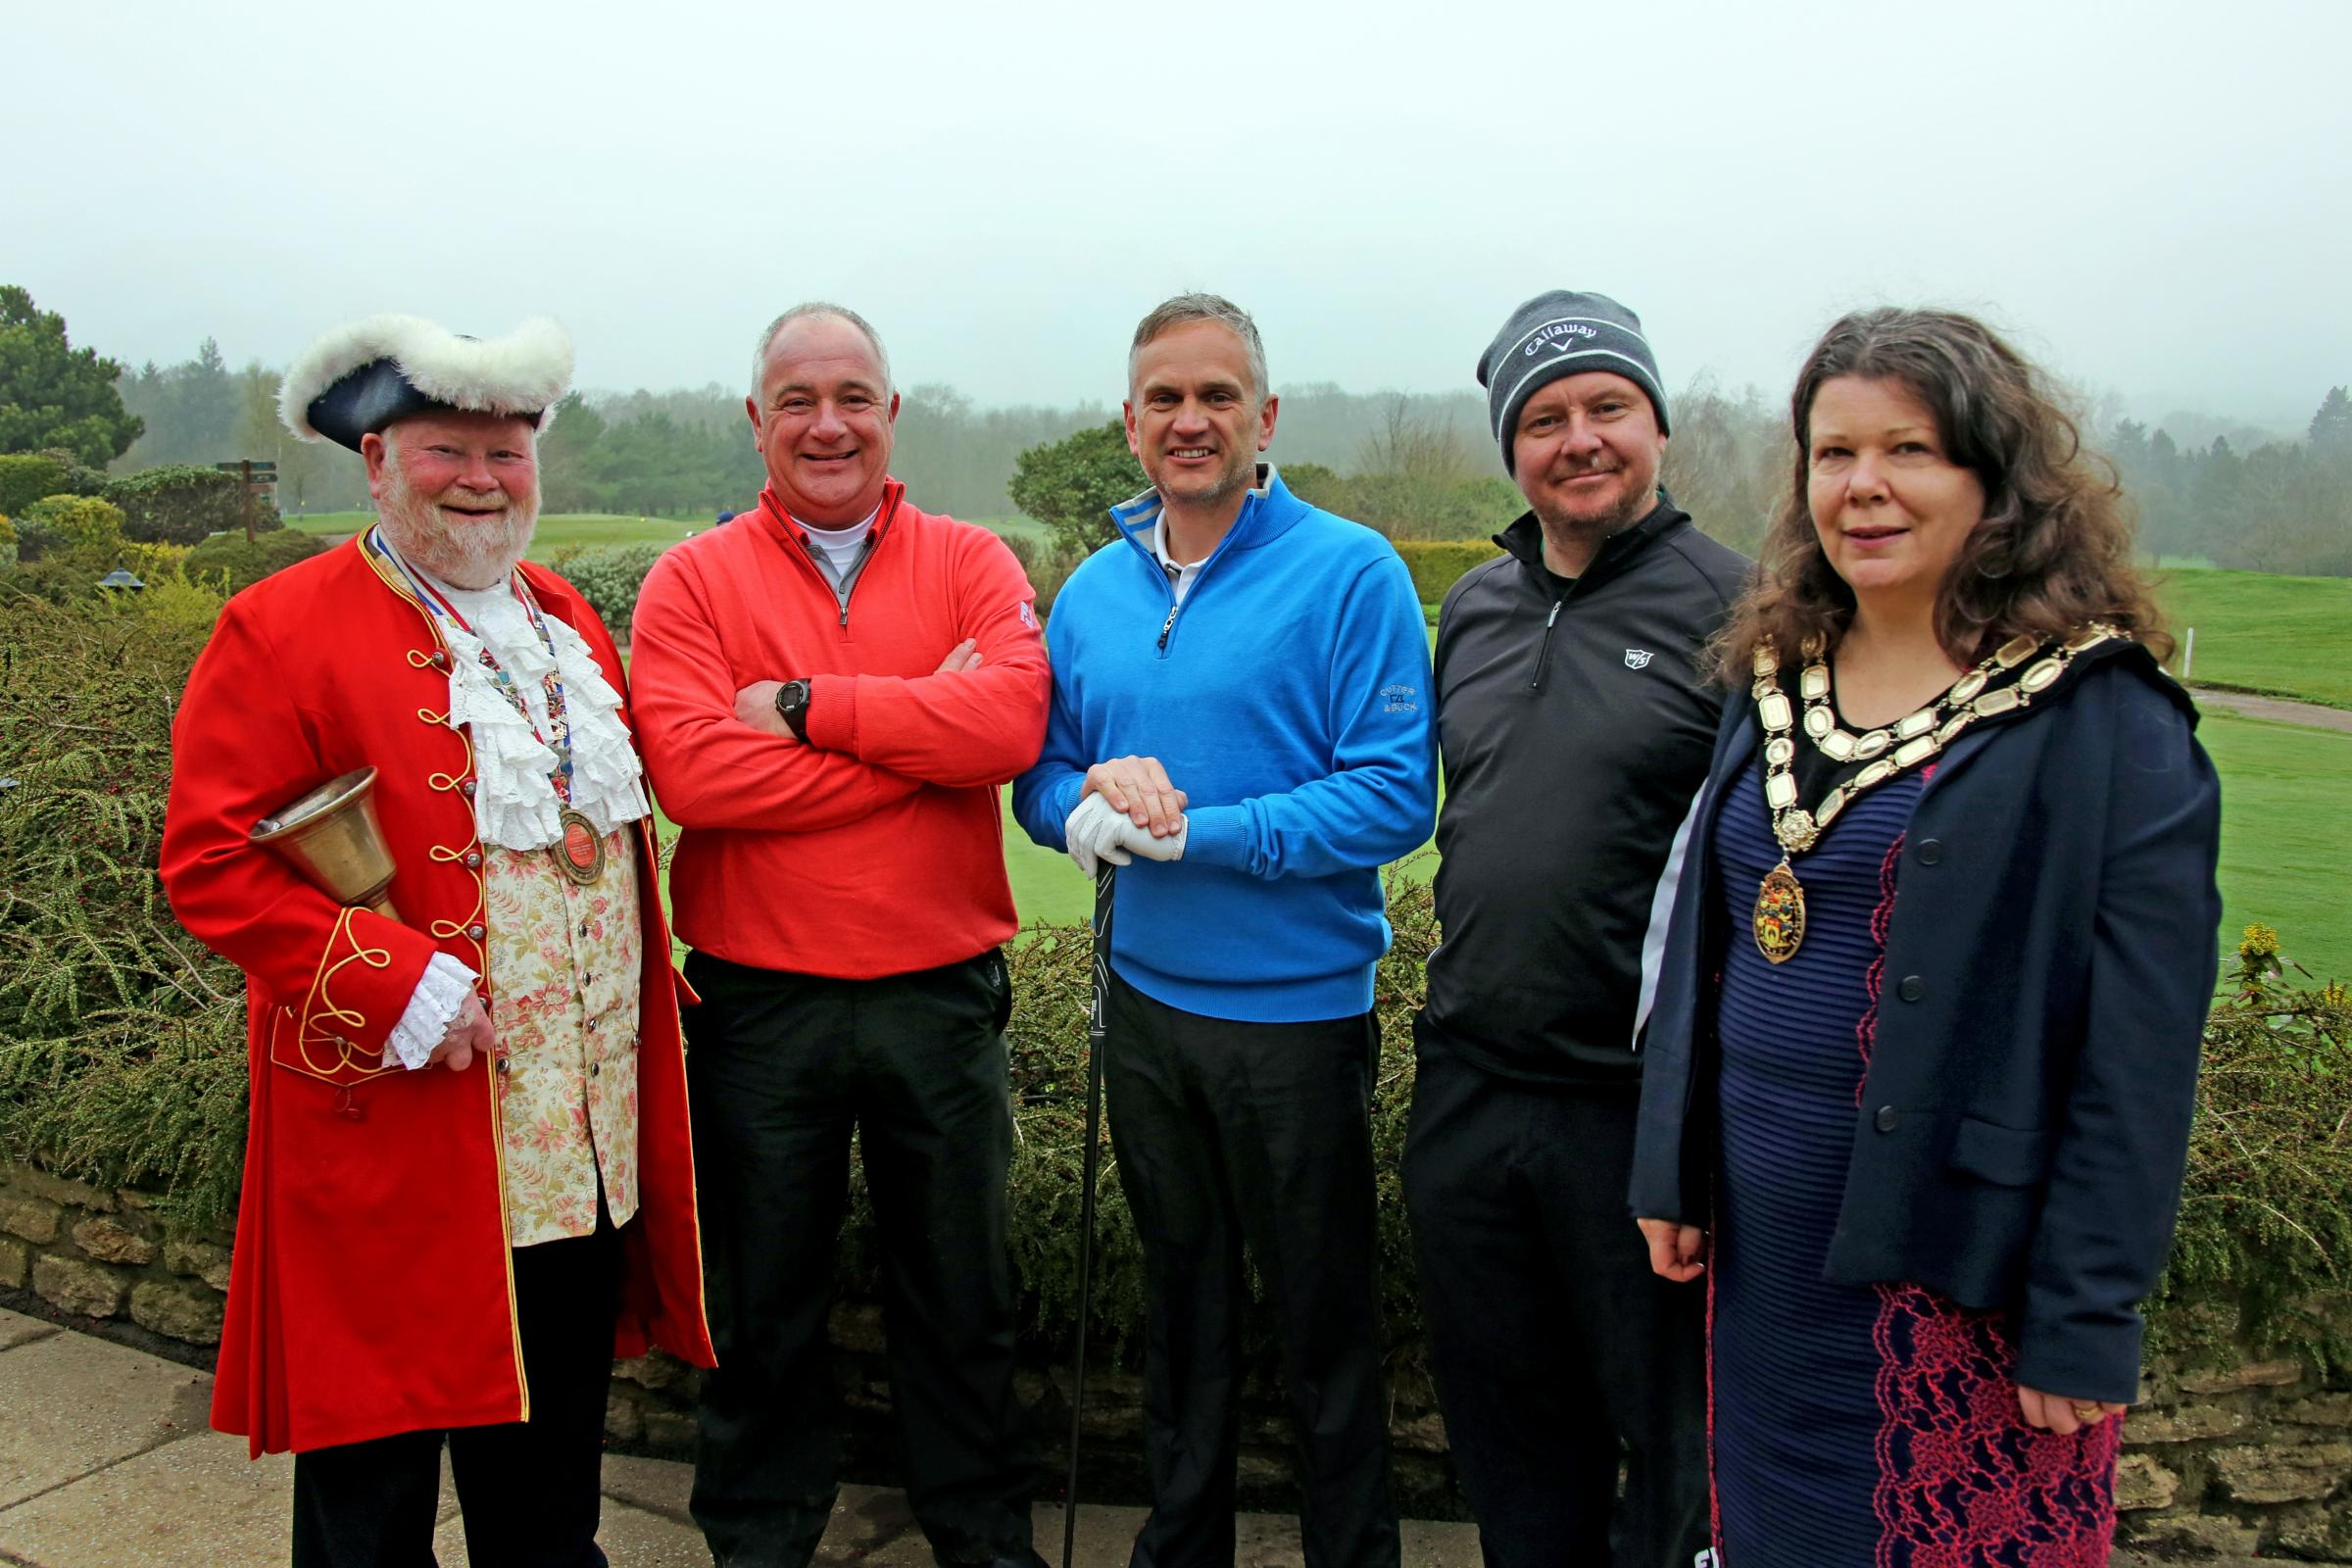 Trowbridge Town Crier Trevor Heeks, golfers Steve Morley, Steve Preston and John Hayes, along with Mayor Deborah Halik.